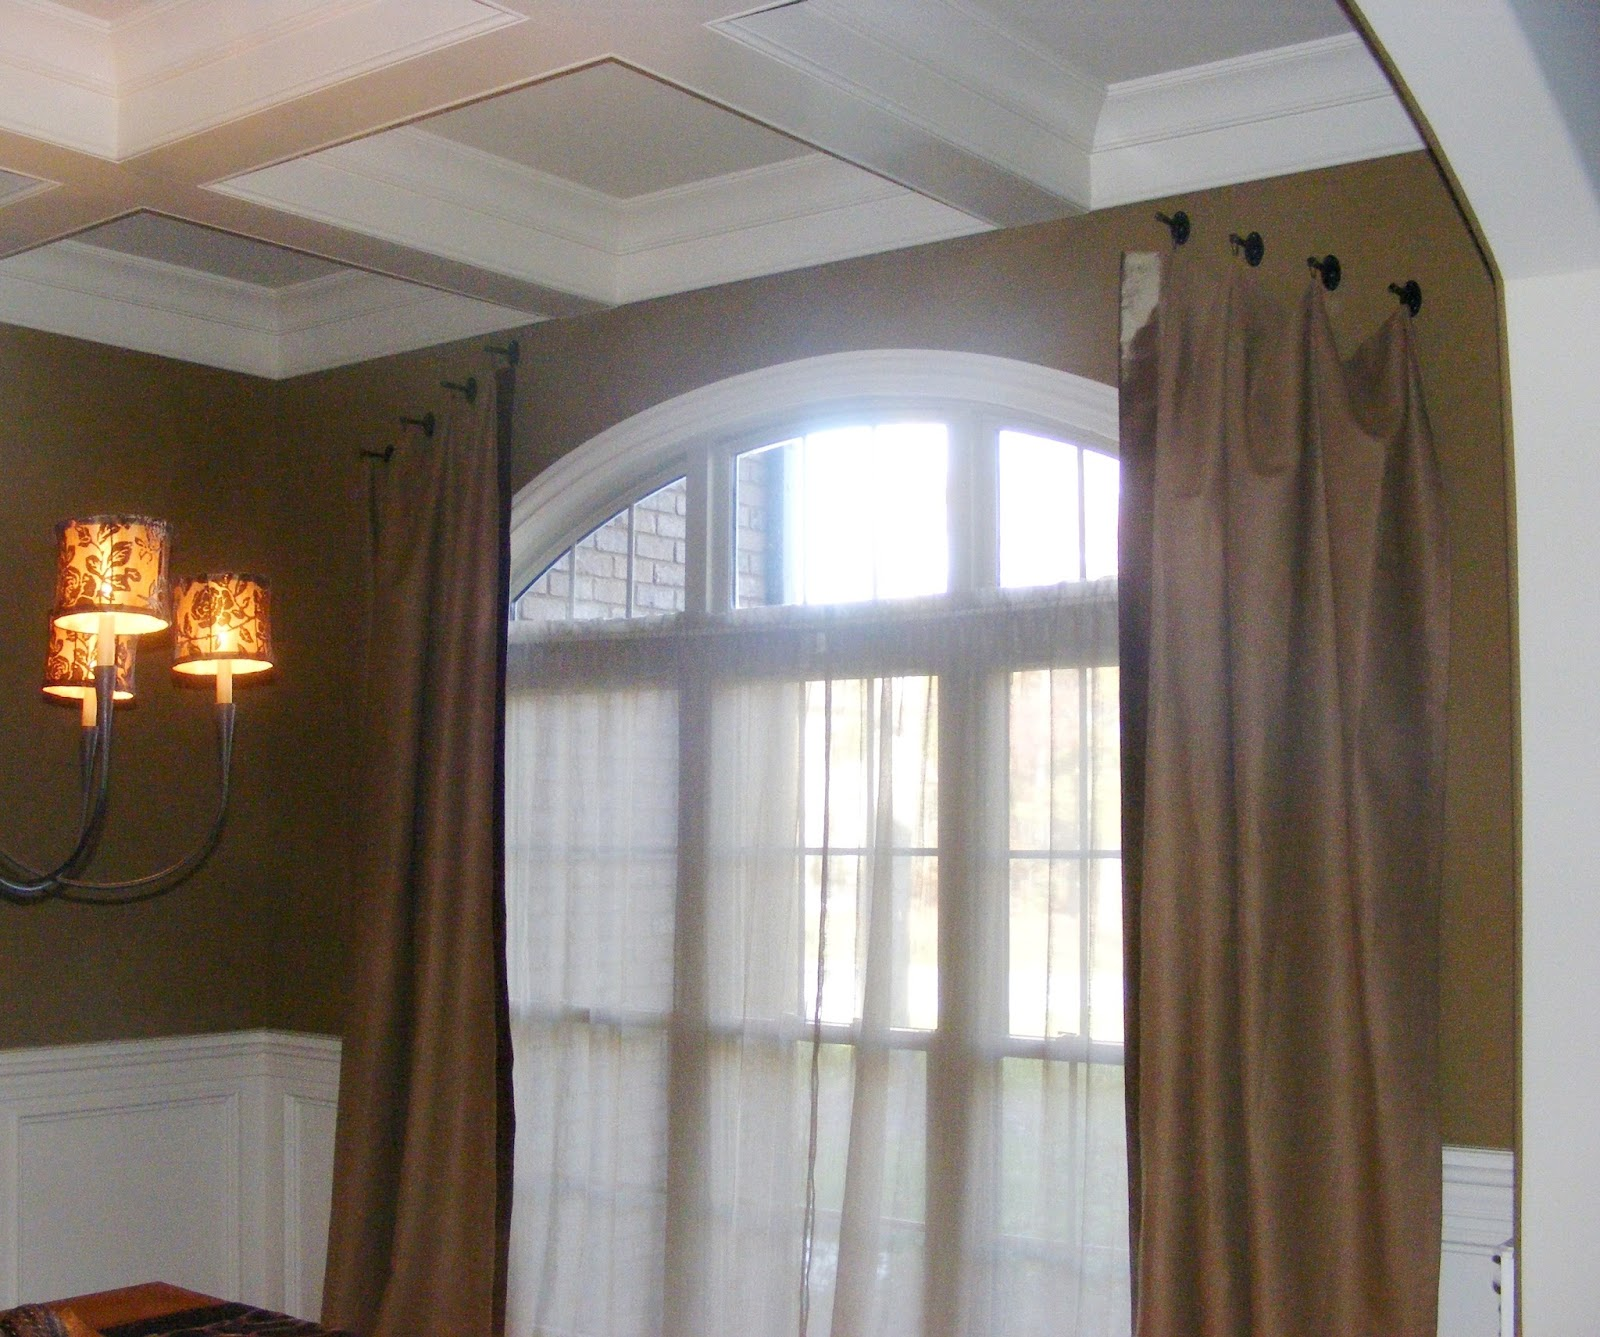 Arched Window Treatments | www.imgkid.com - The Image Kid ...